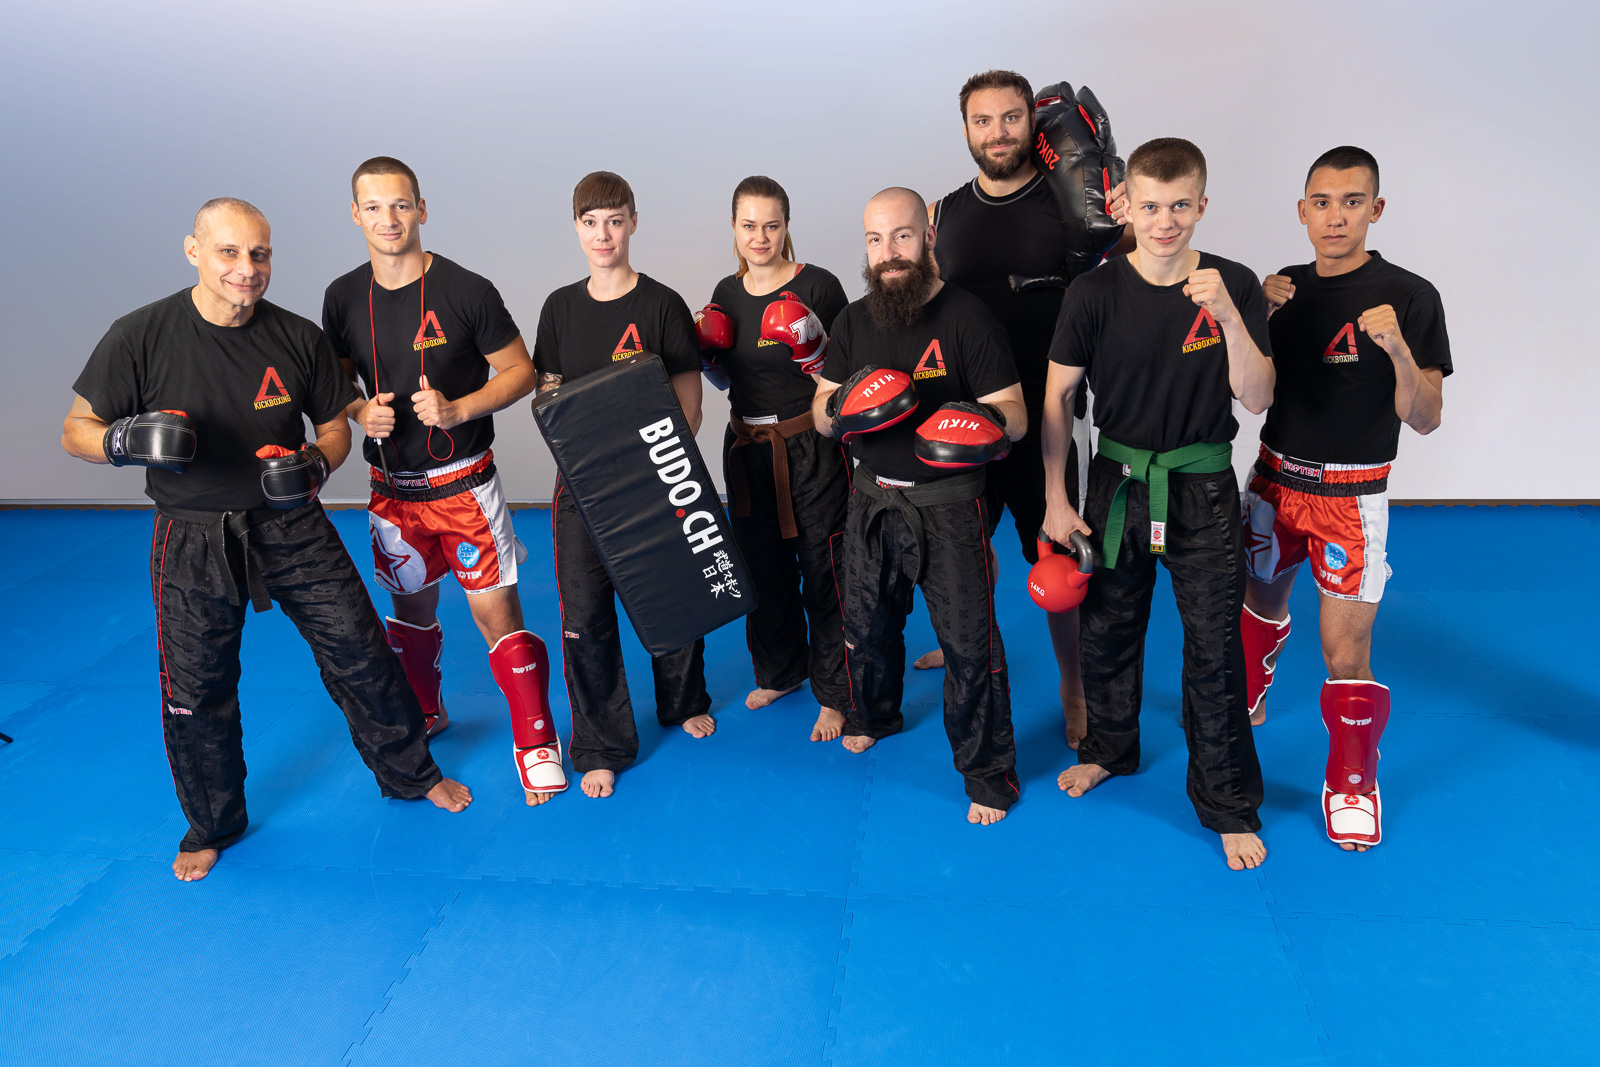 APEX Kickbox Team